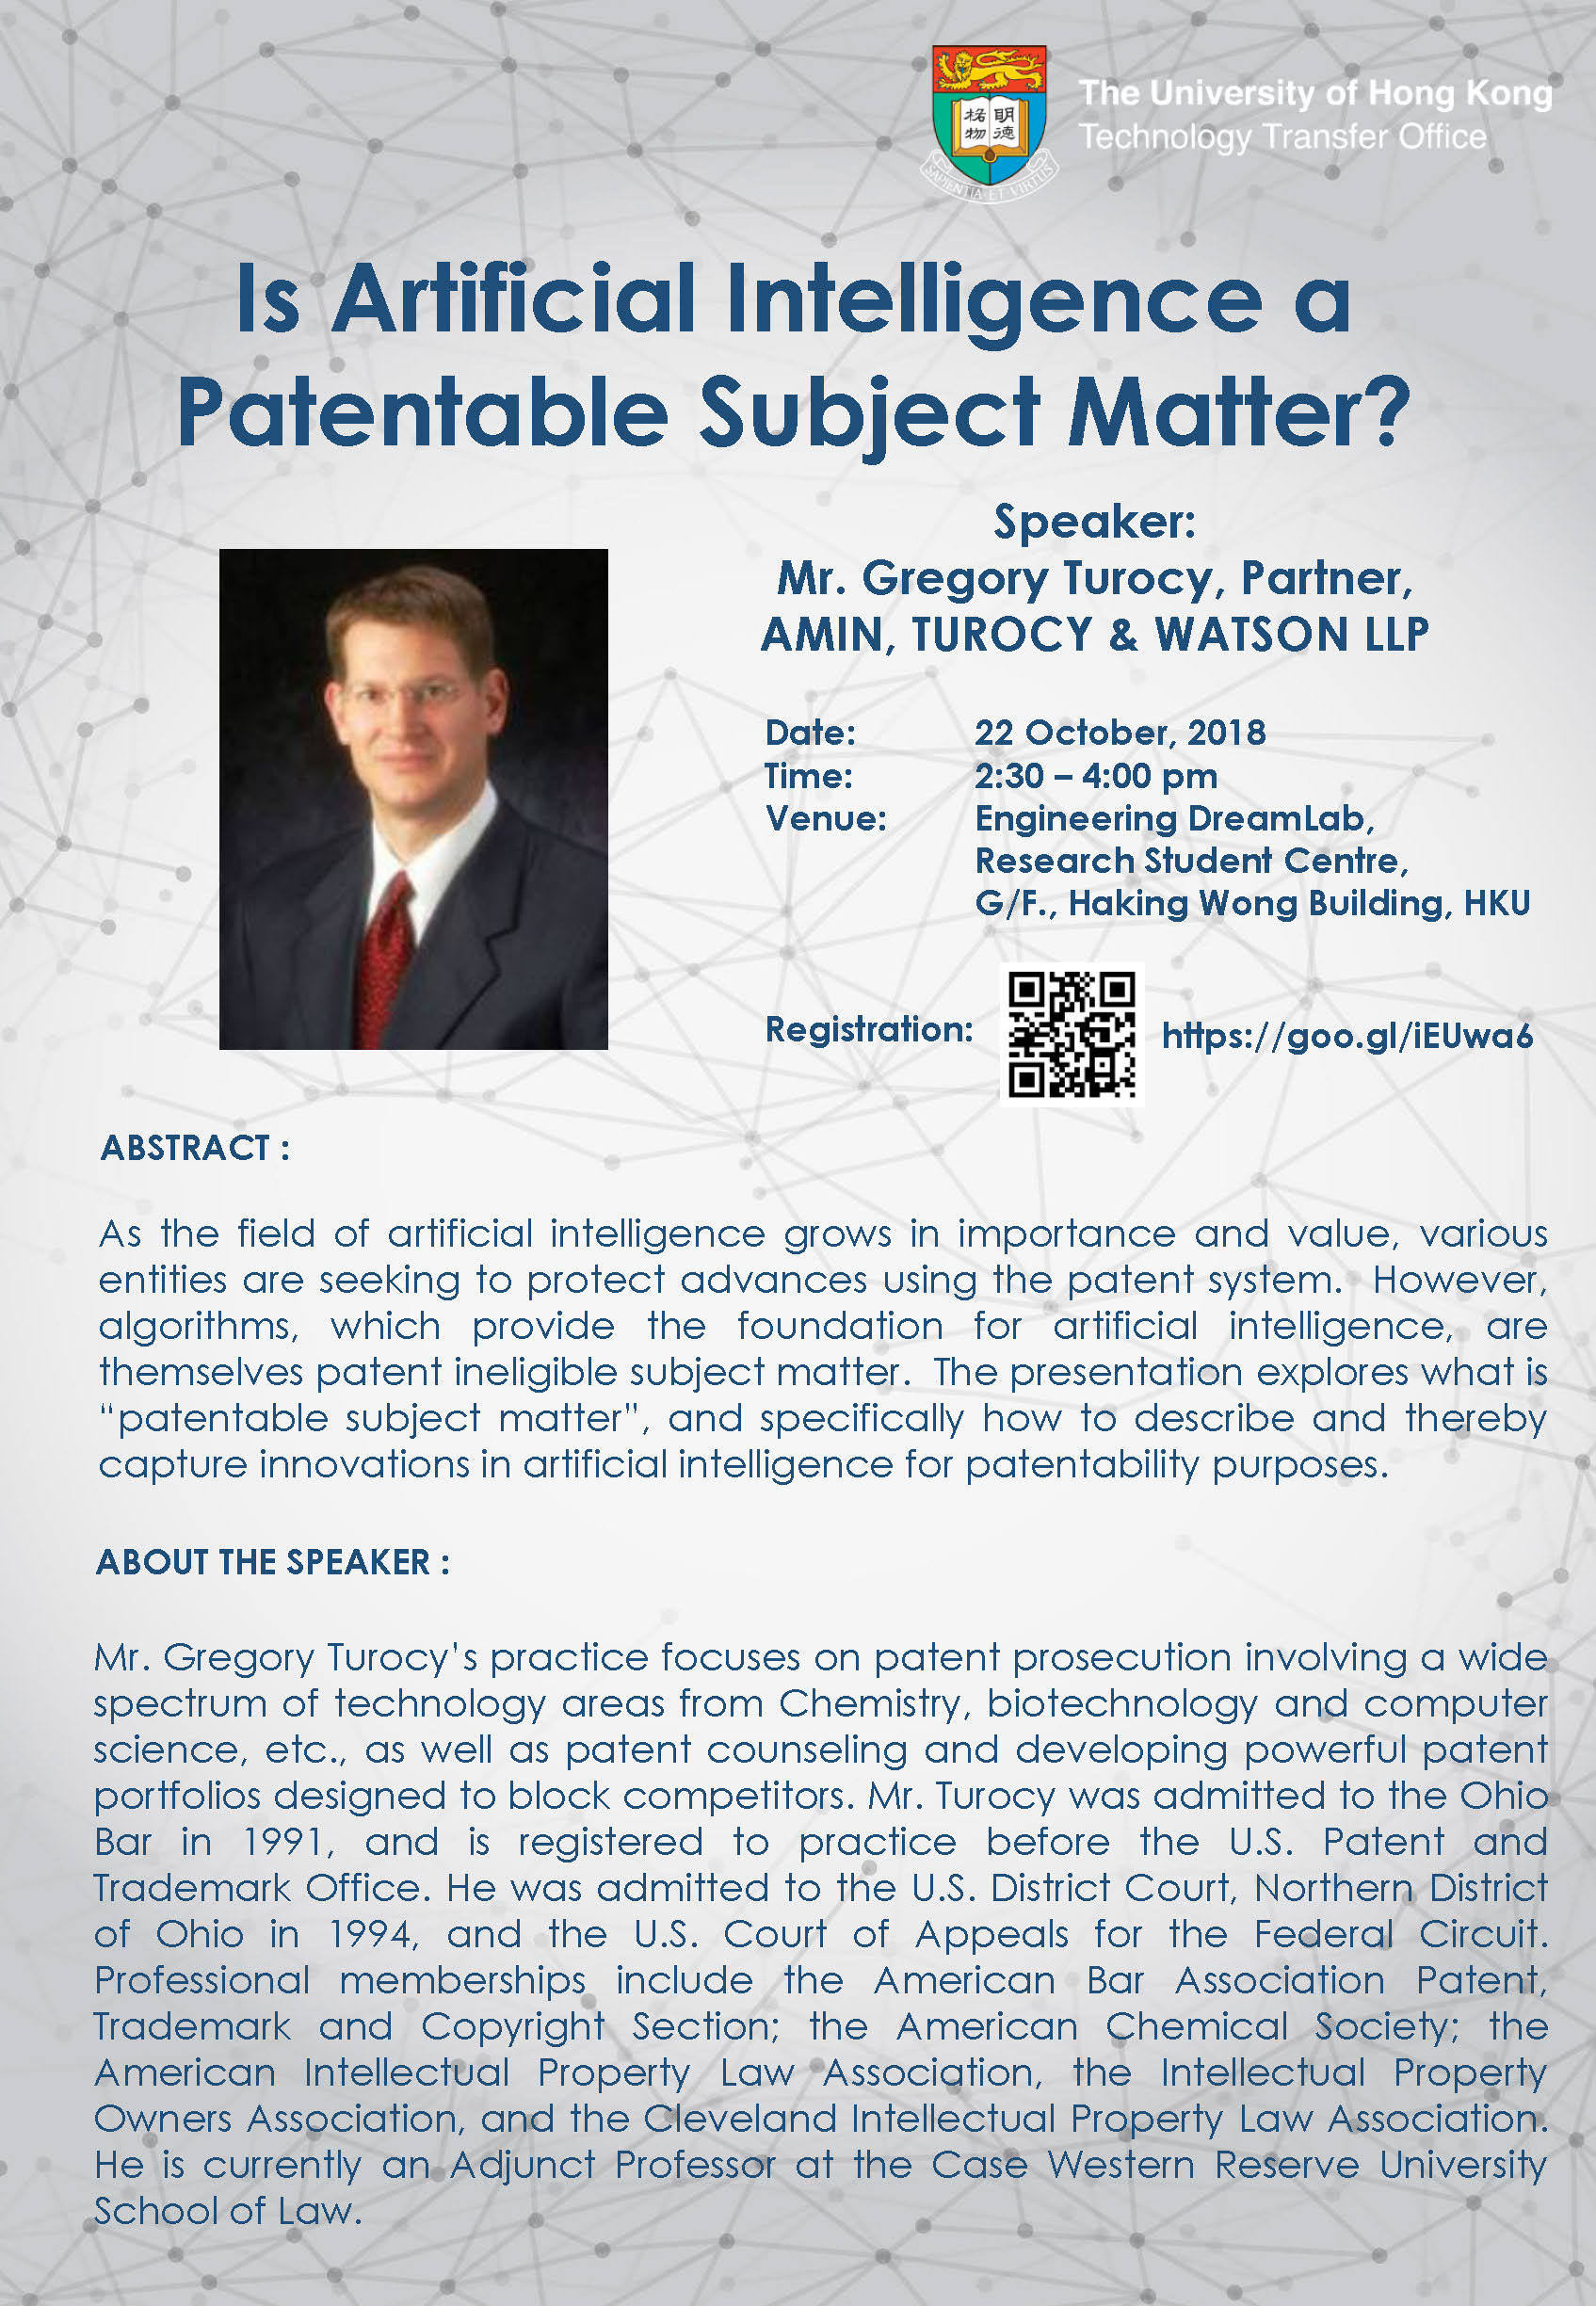 Is Artificial Intelligence A Patentable Subject Matter